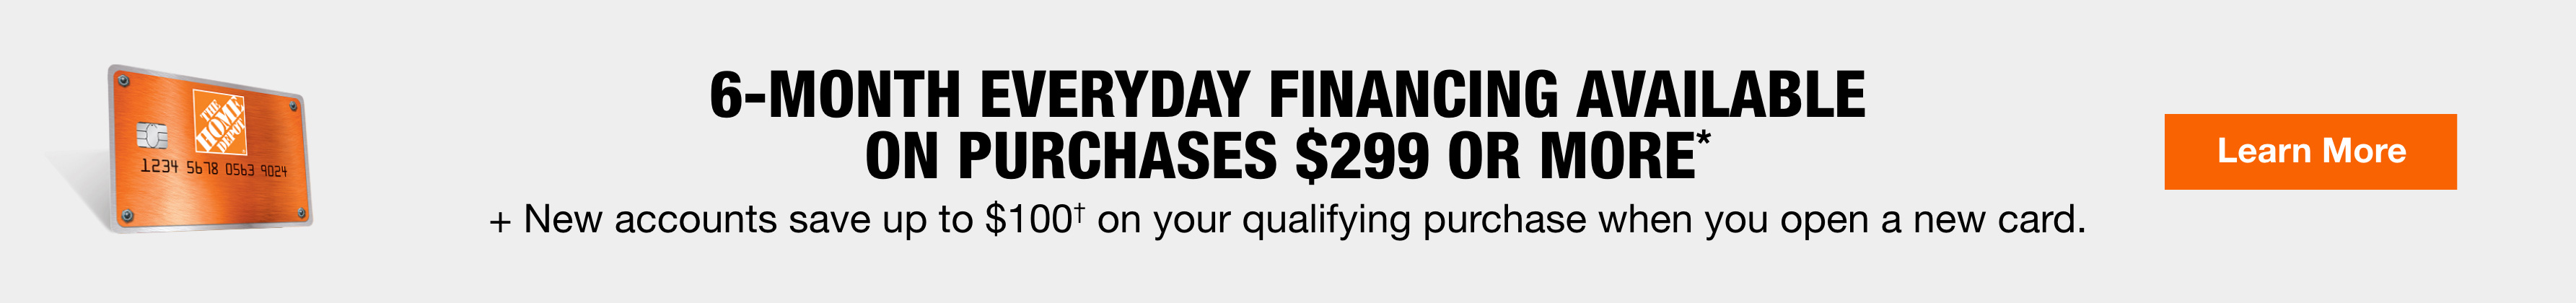 6-Month Everyday Financing Available On Purchases $299 Or More